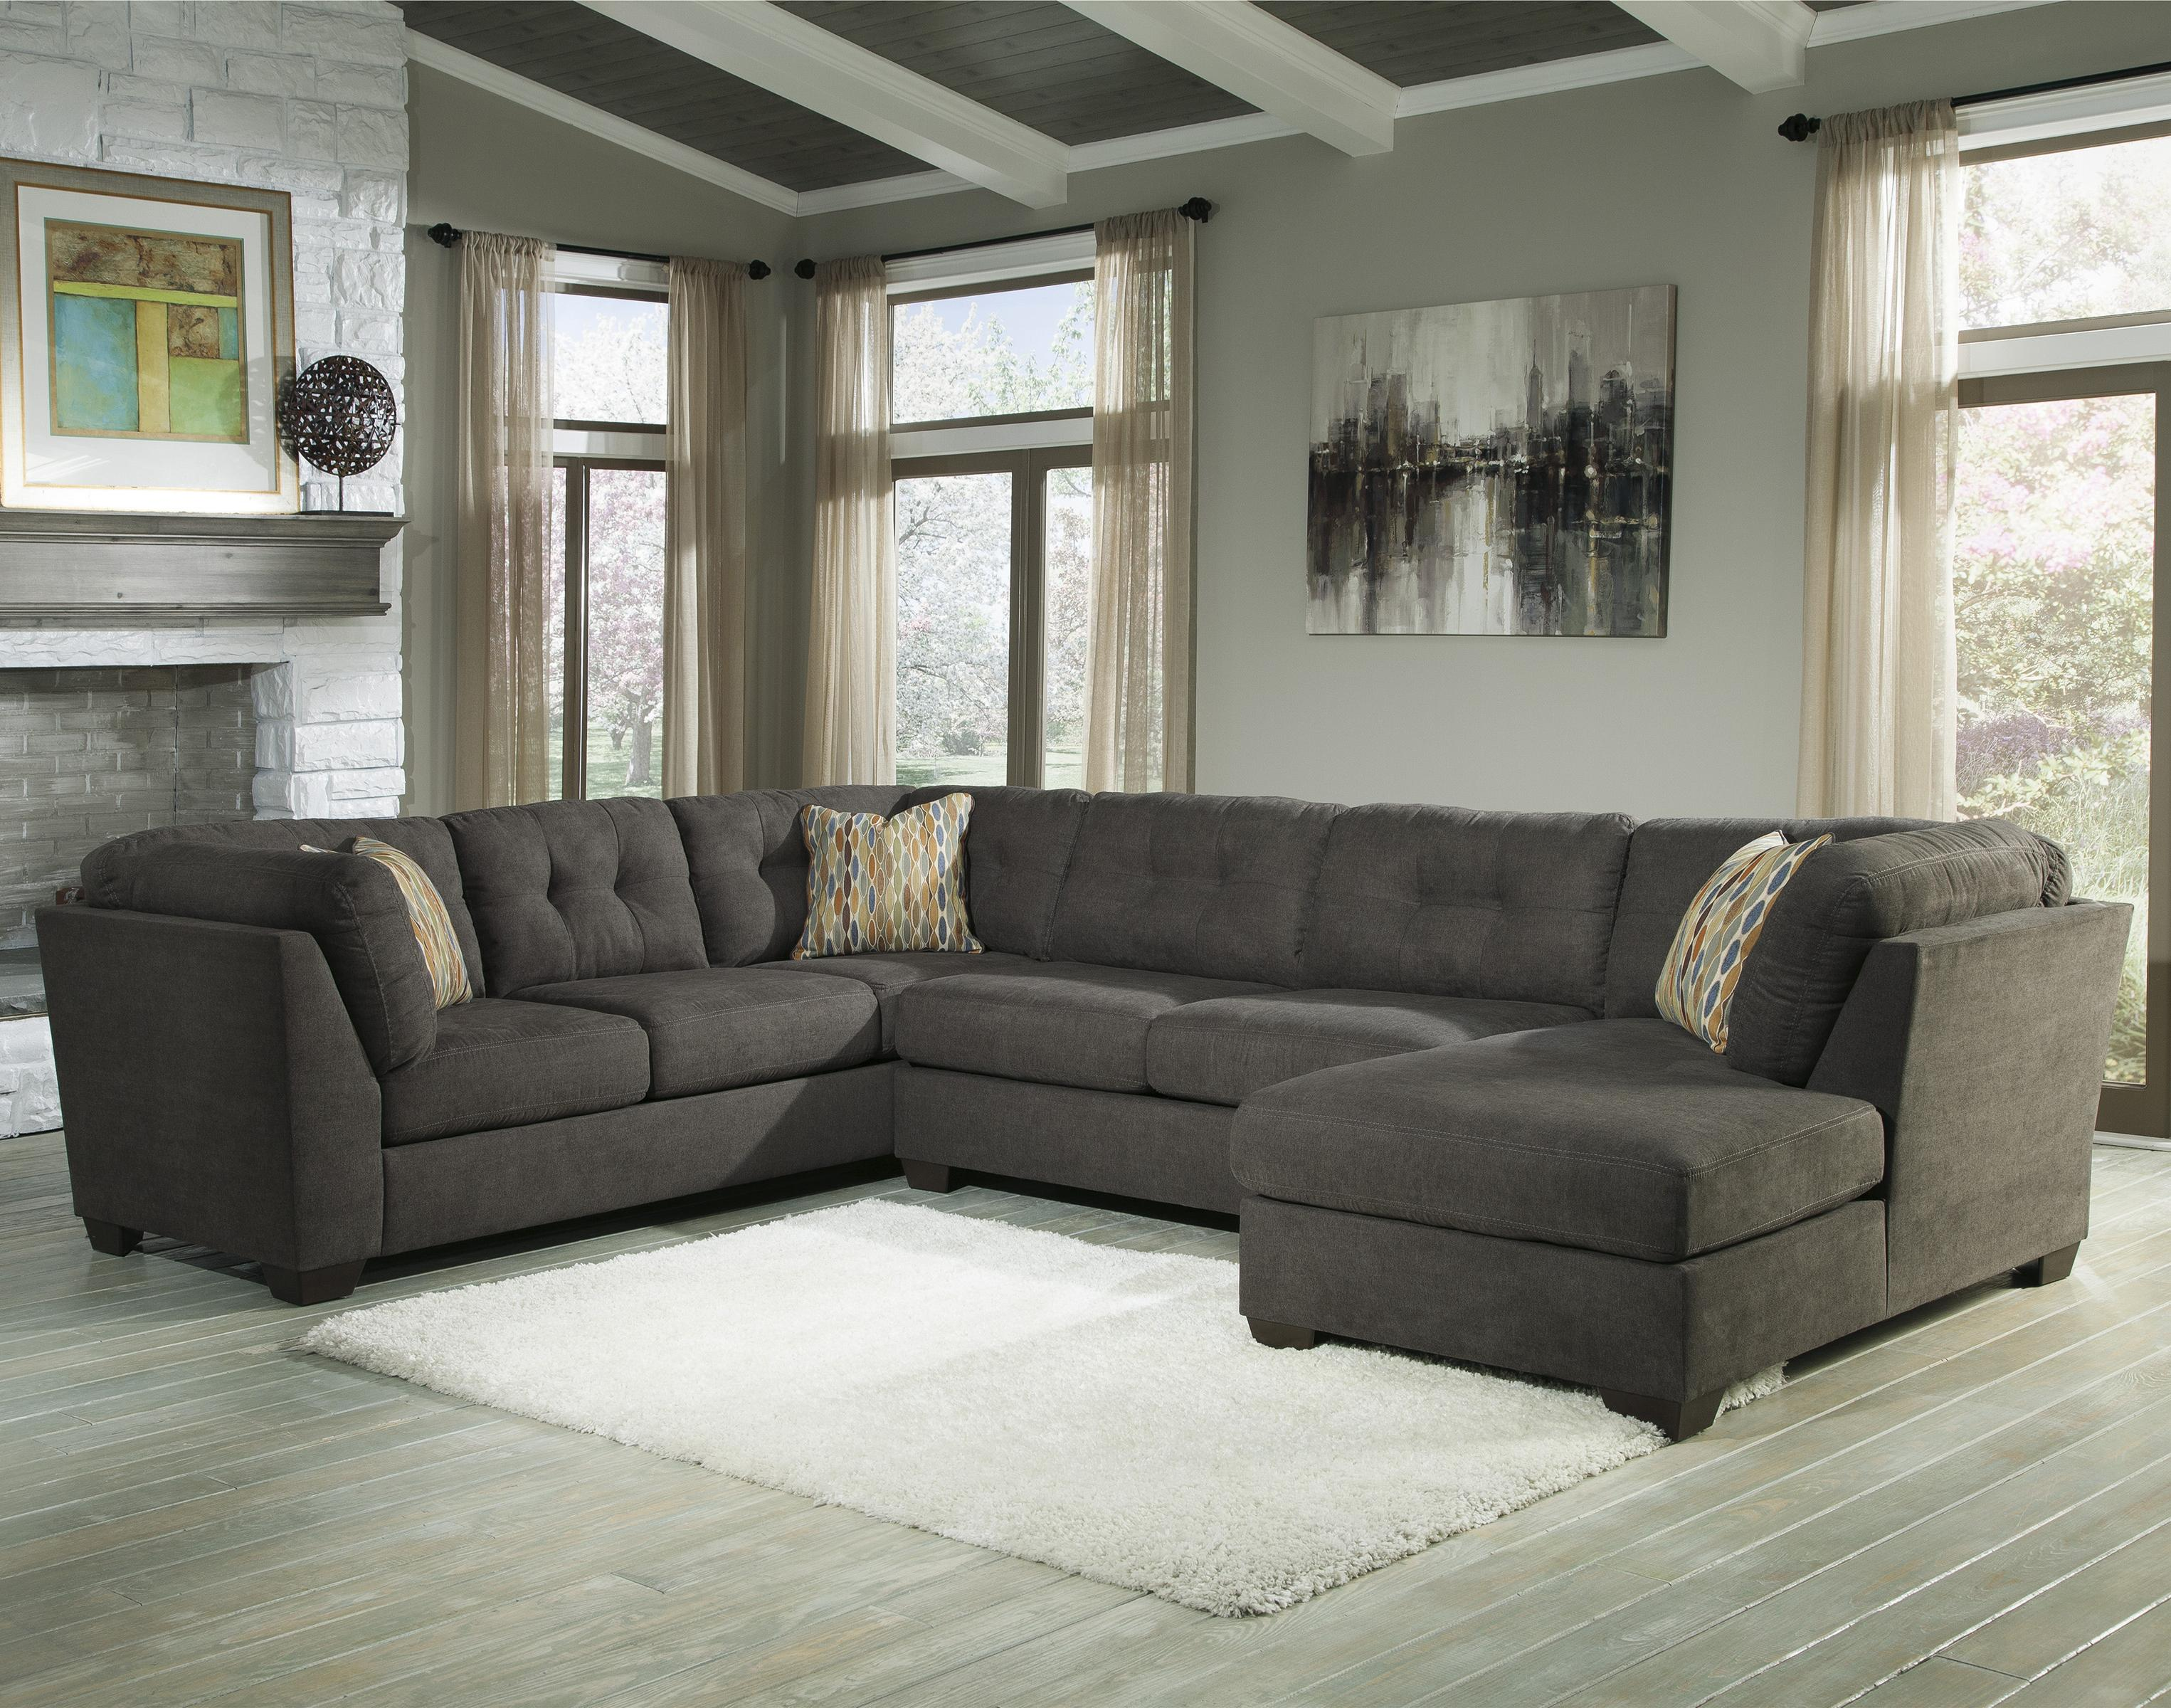 Benchcraft Delta City Steel 3 Piece Modular Sectional